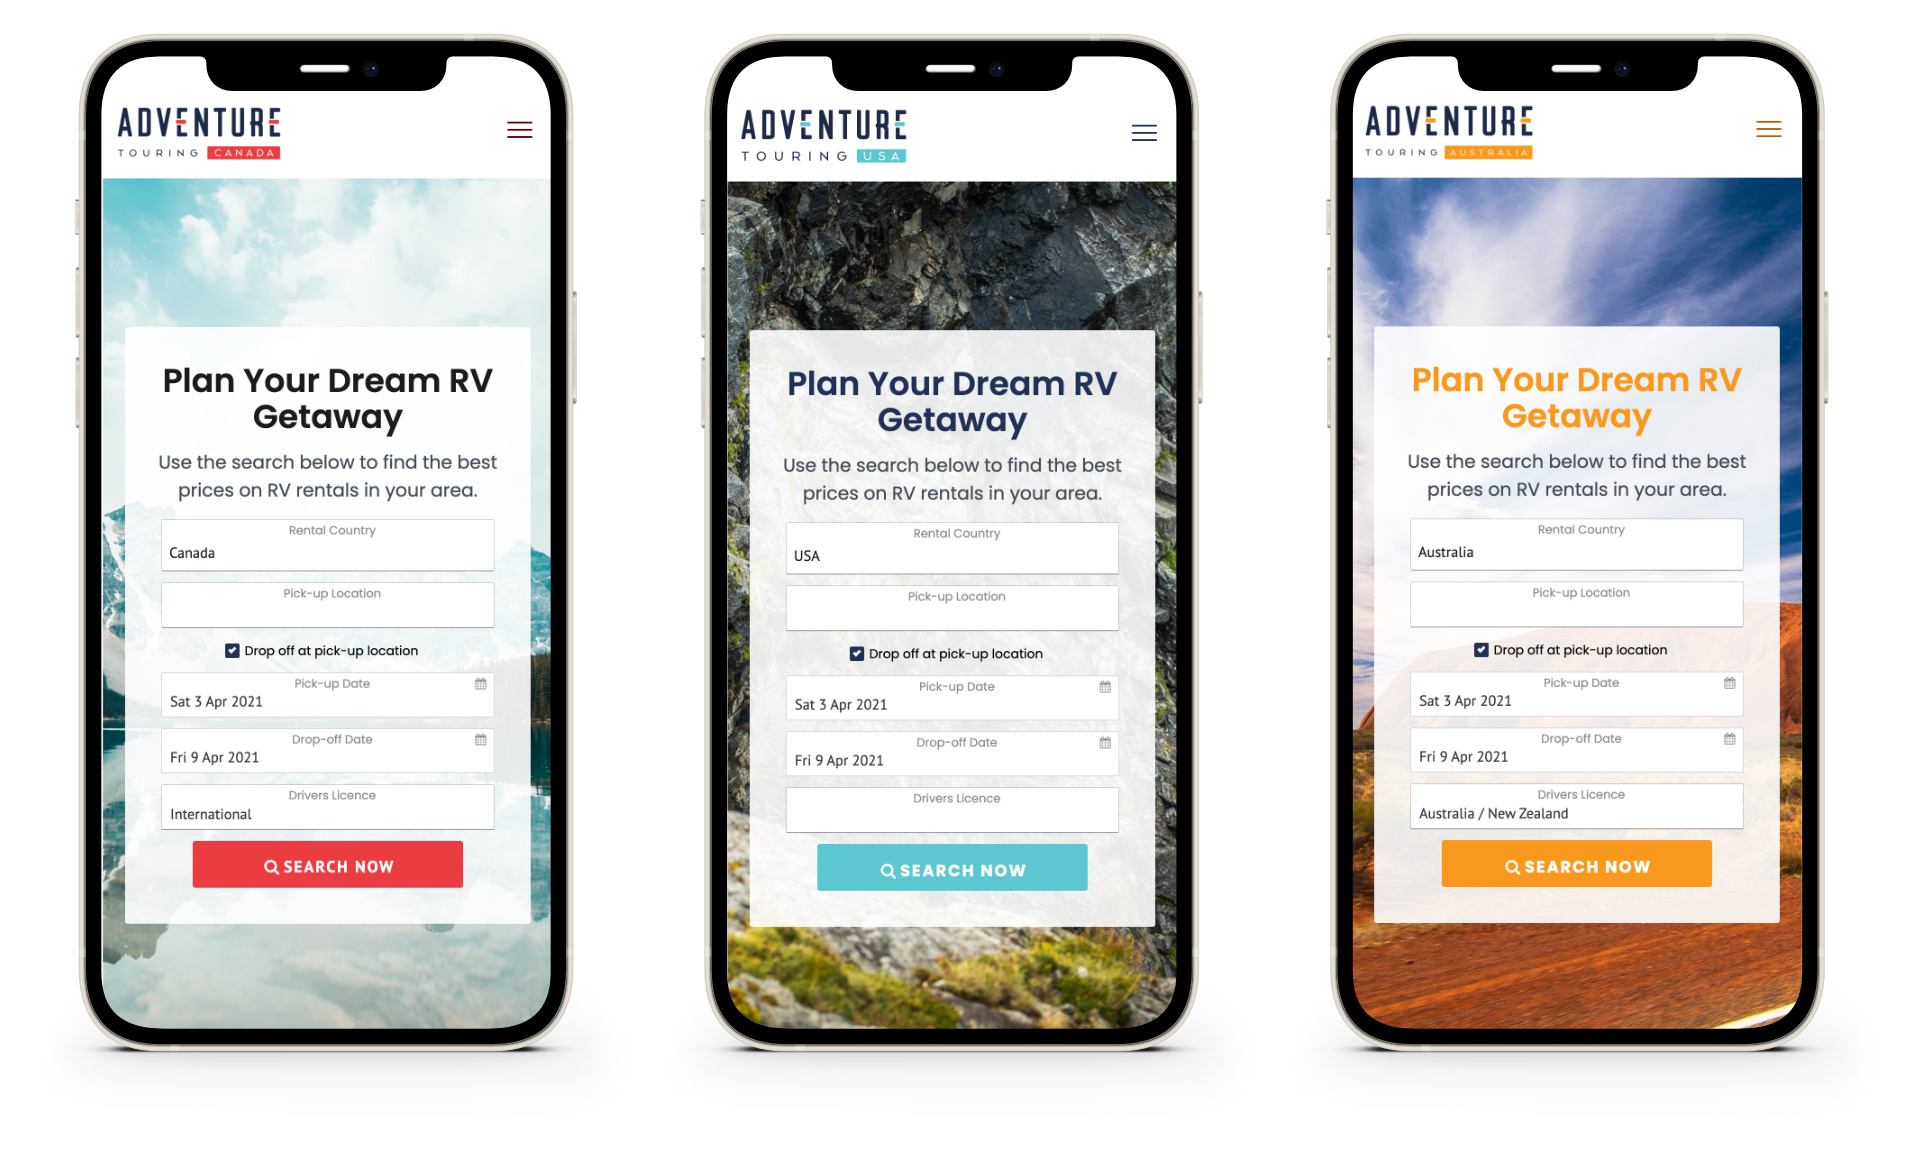 All 3 Adventure Touring Country Sites on iPhones